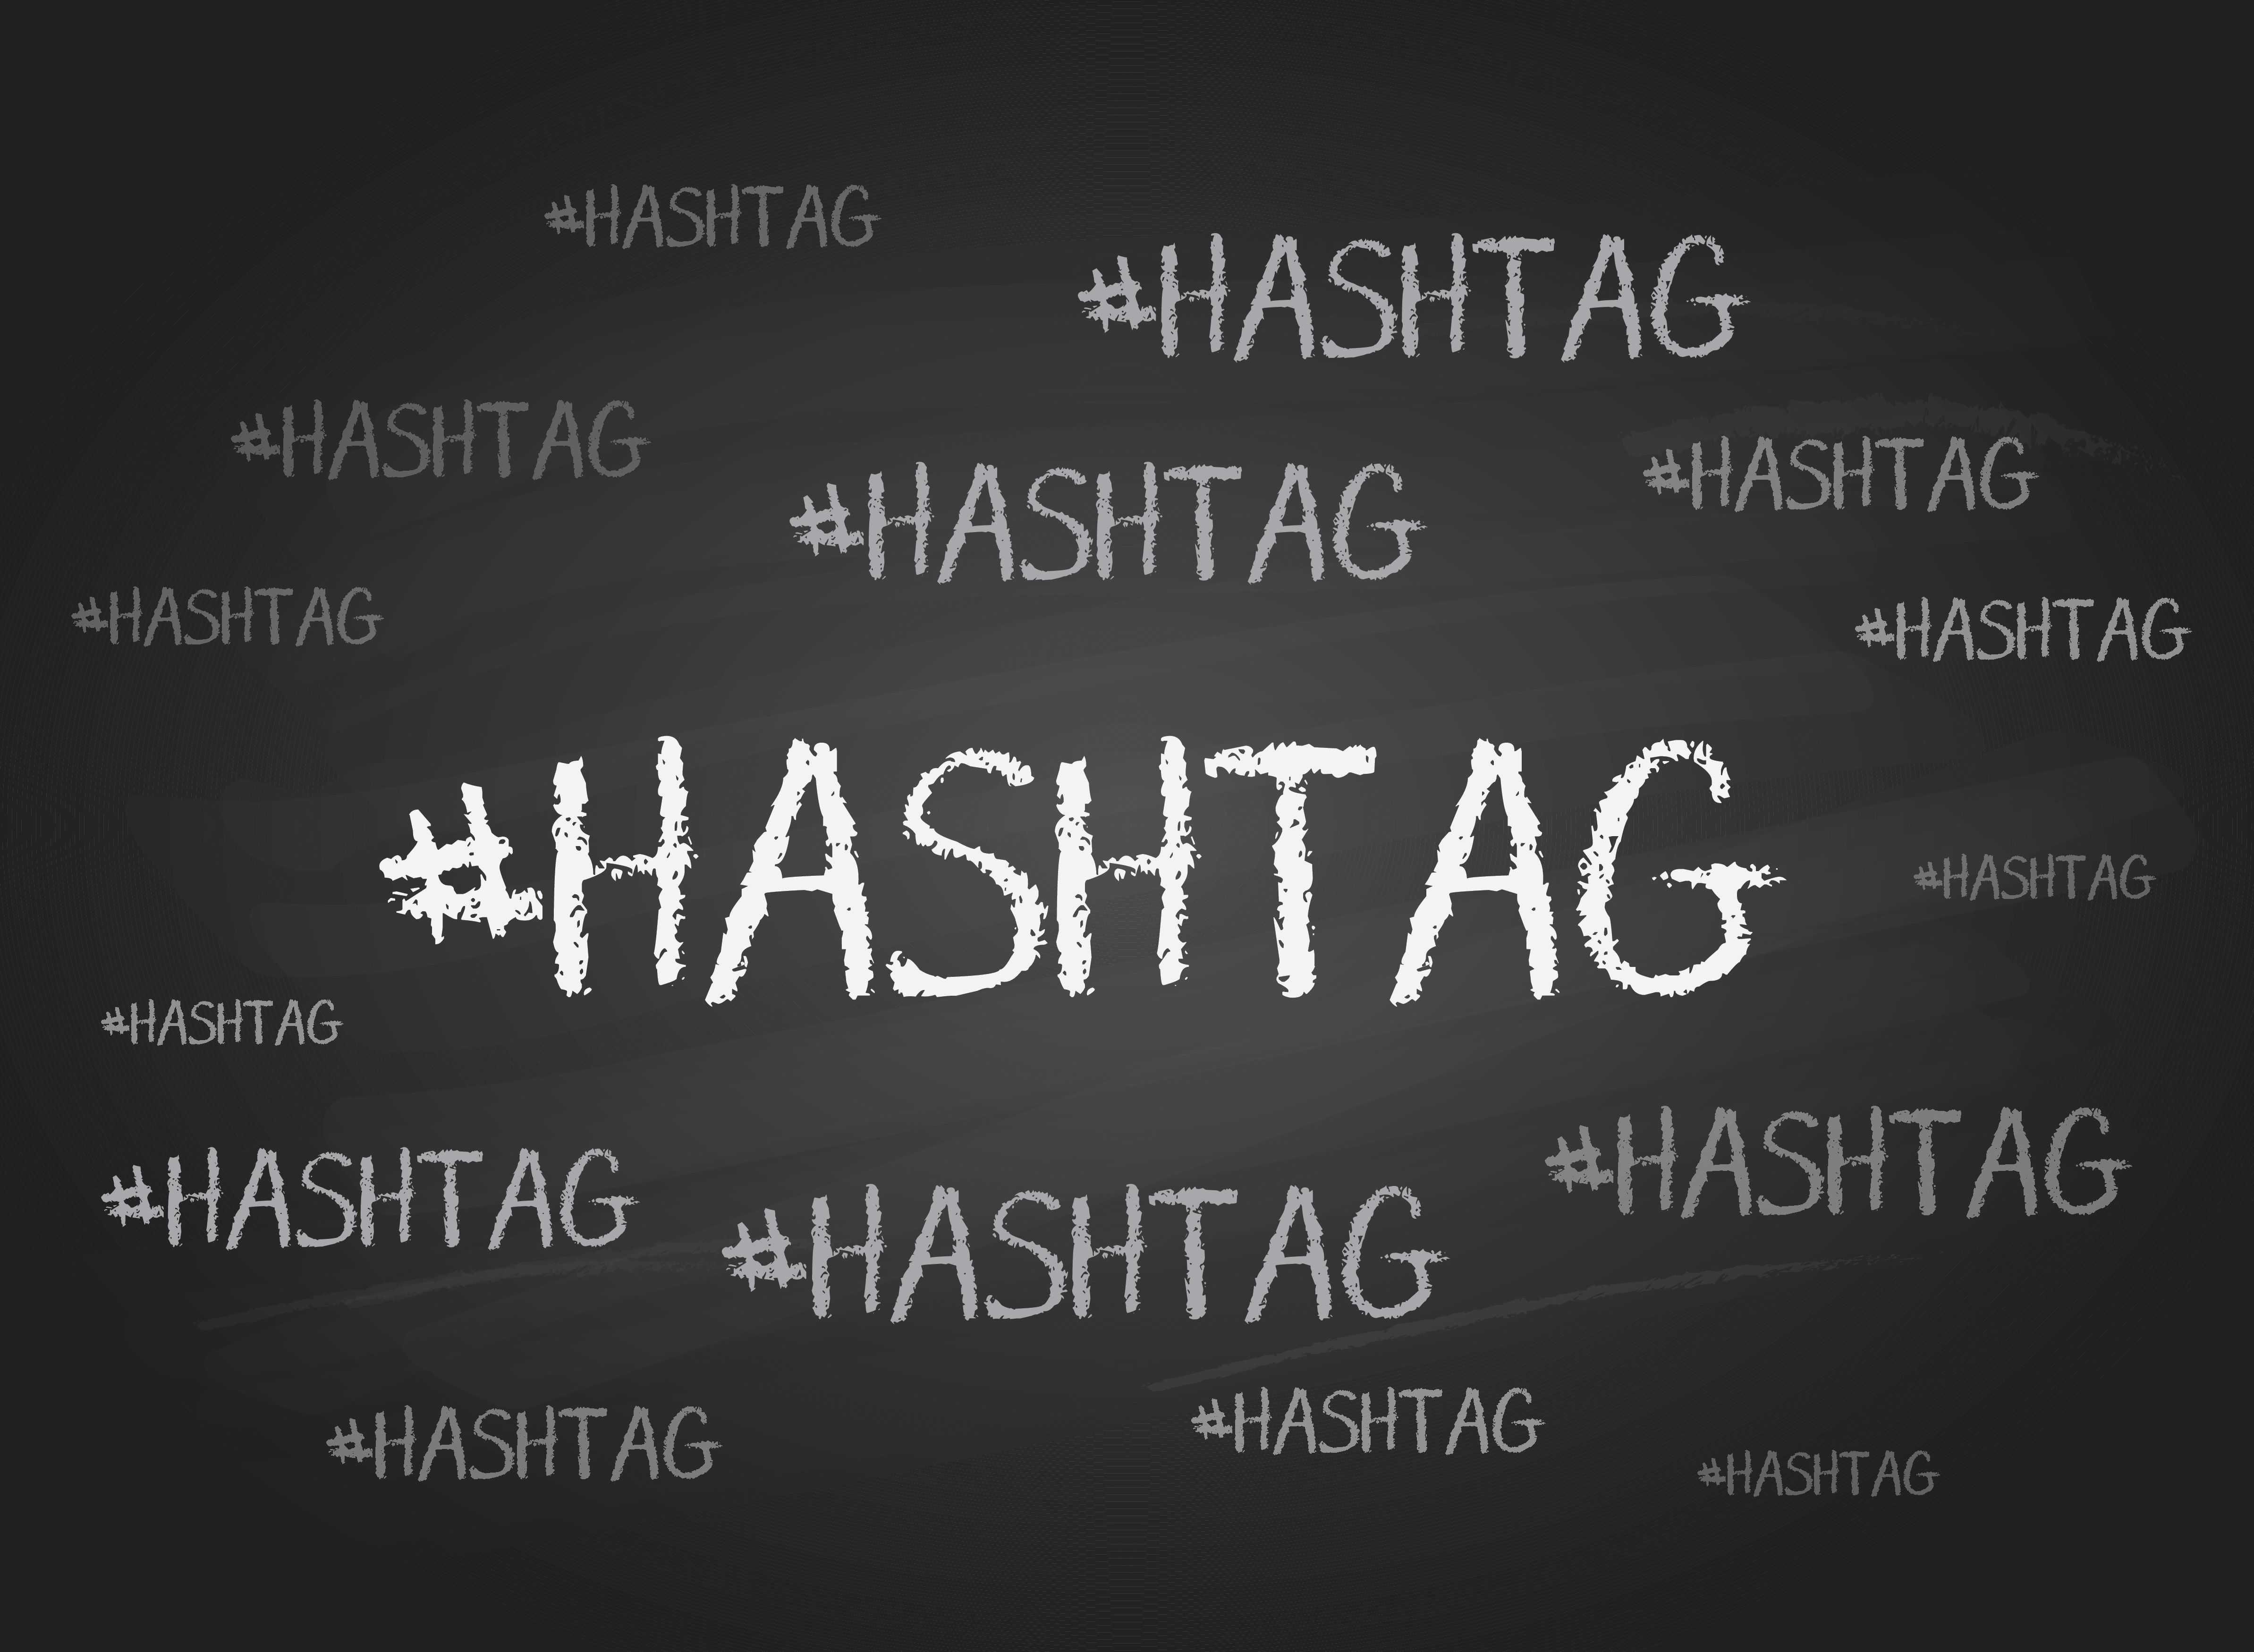 the value of social media hashtags and how to use them